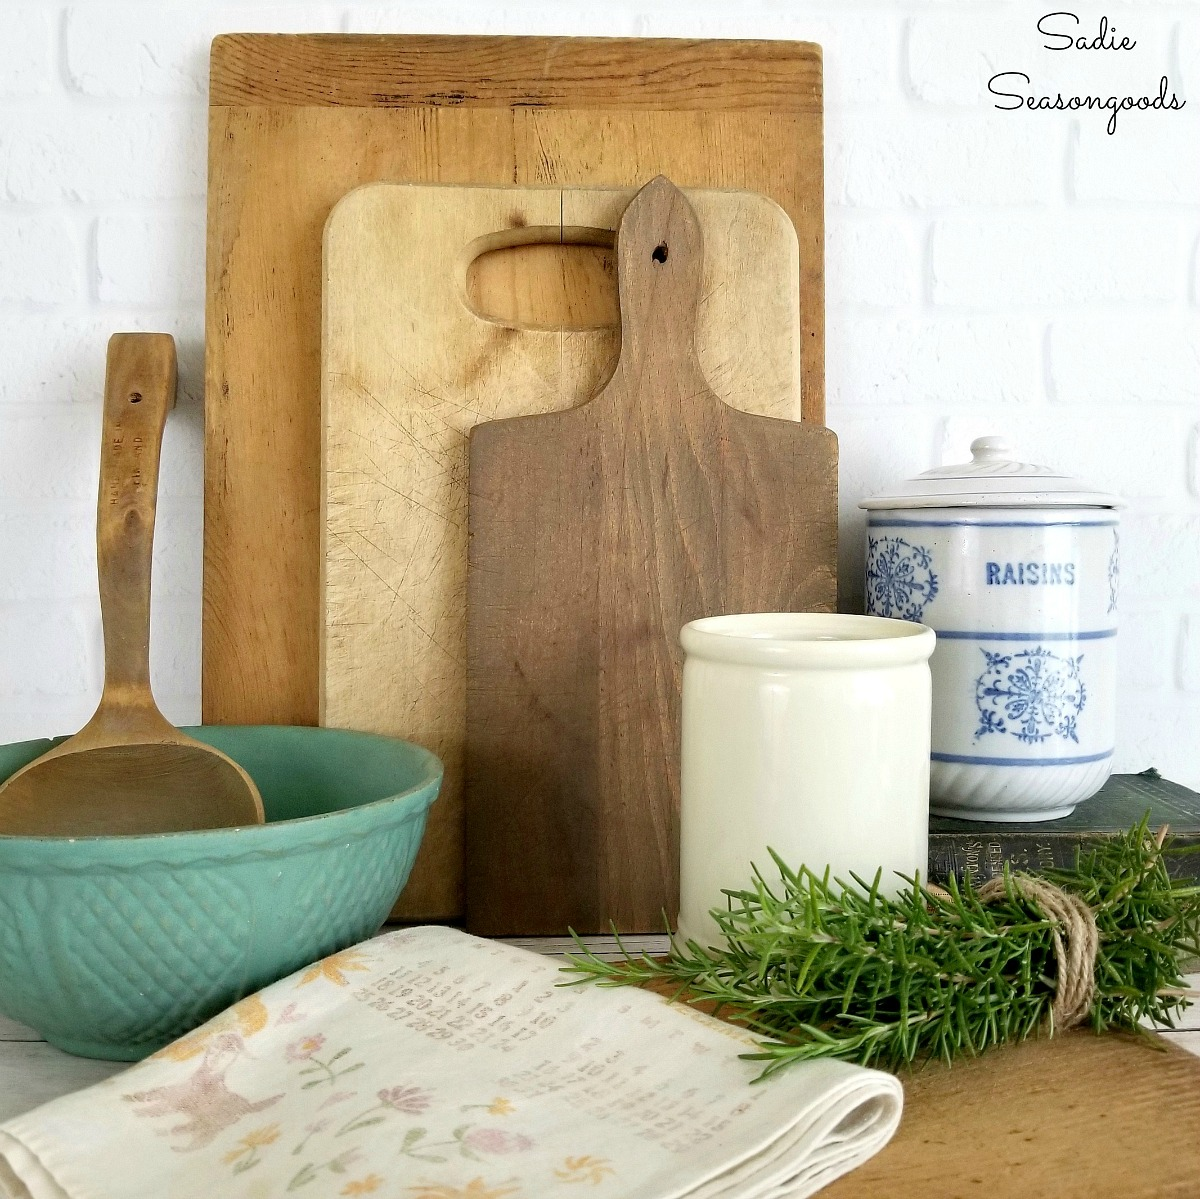 Cheap farmhouse decor from the thrift store and upcycling ideas for French farmhouse decor in the kitchen